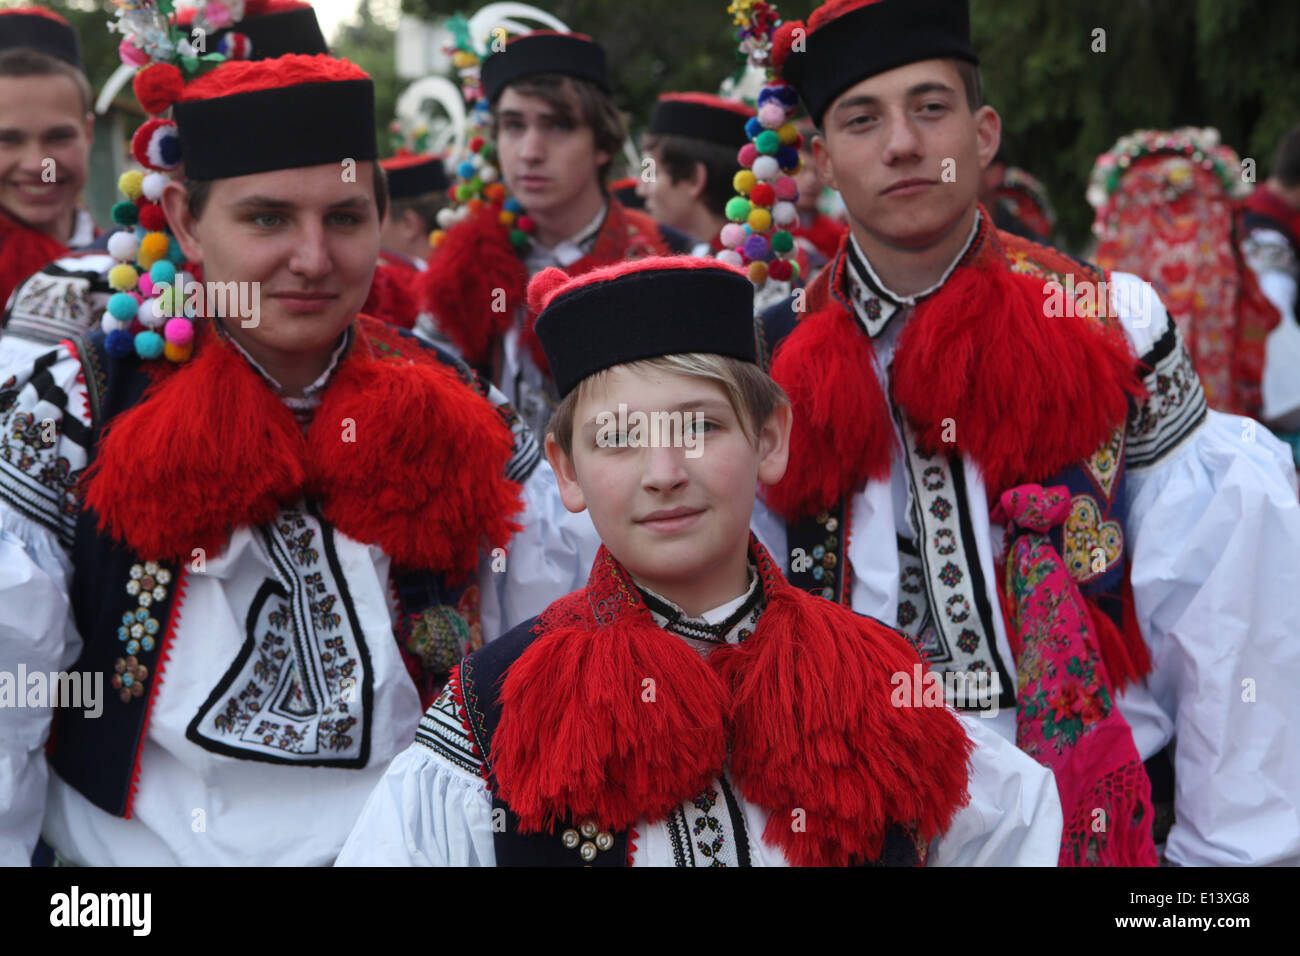 The Ride of the Kings. Traditional folklore festival in Vlcnov, Czech Republic. The boy king followed by the pageboys. - Stock Image